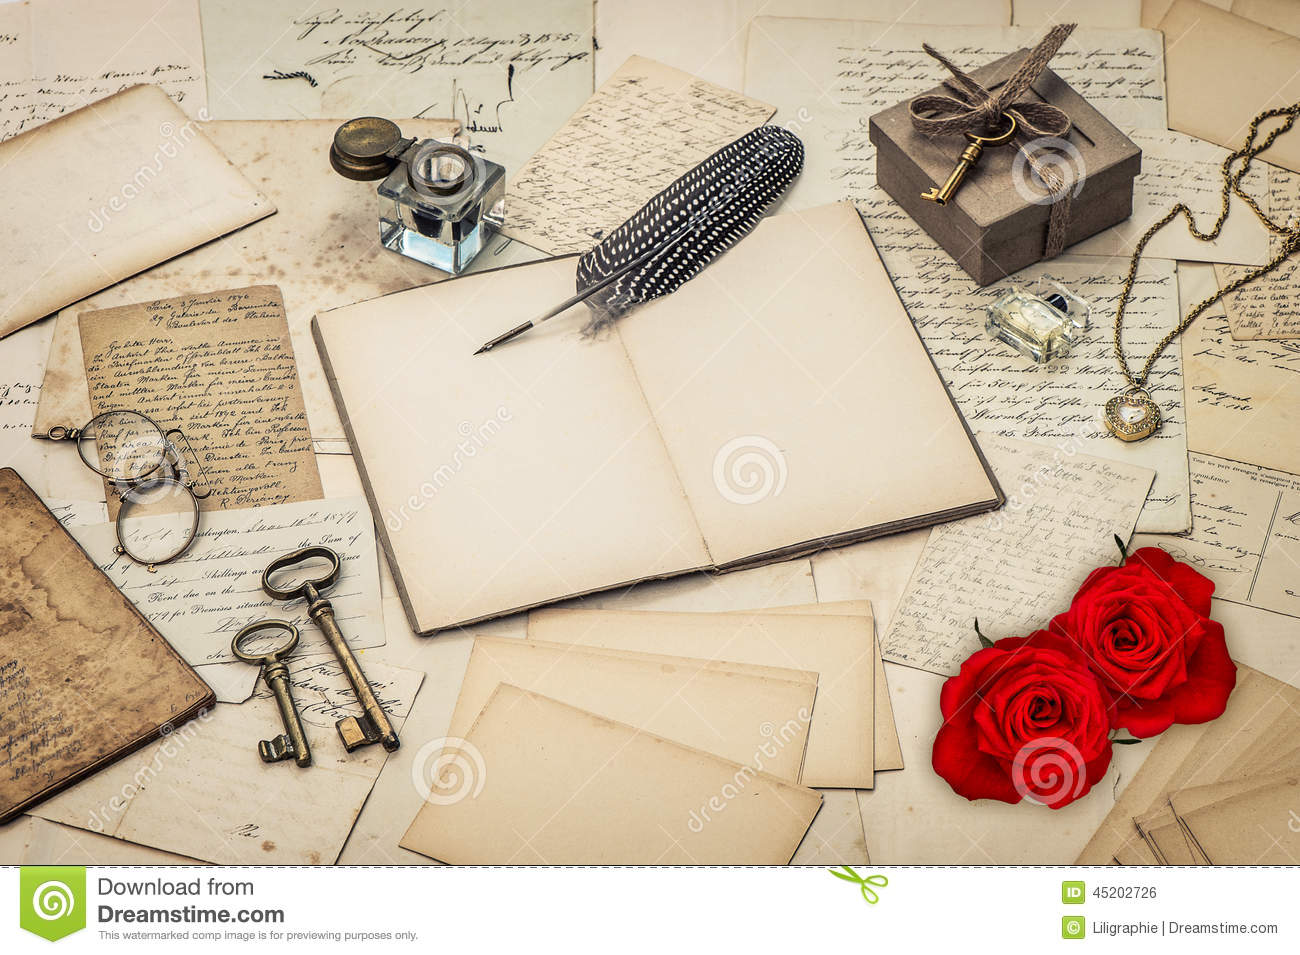 diary book old love letters and red rose flowers royalty free stock image